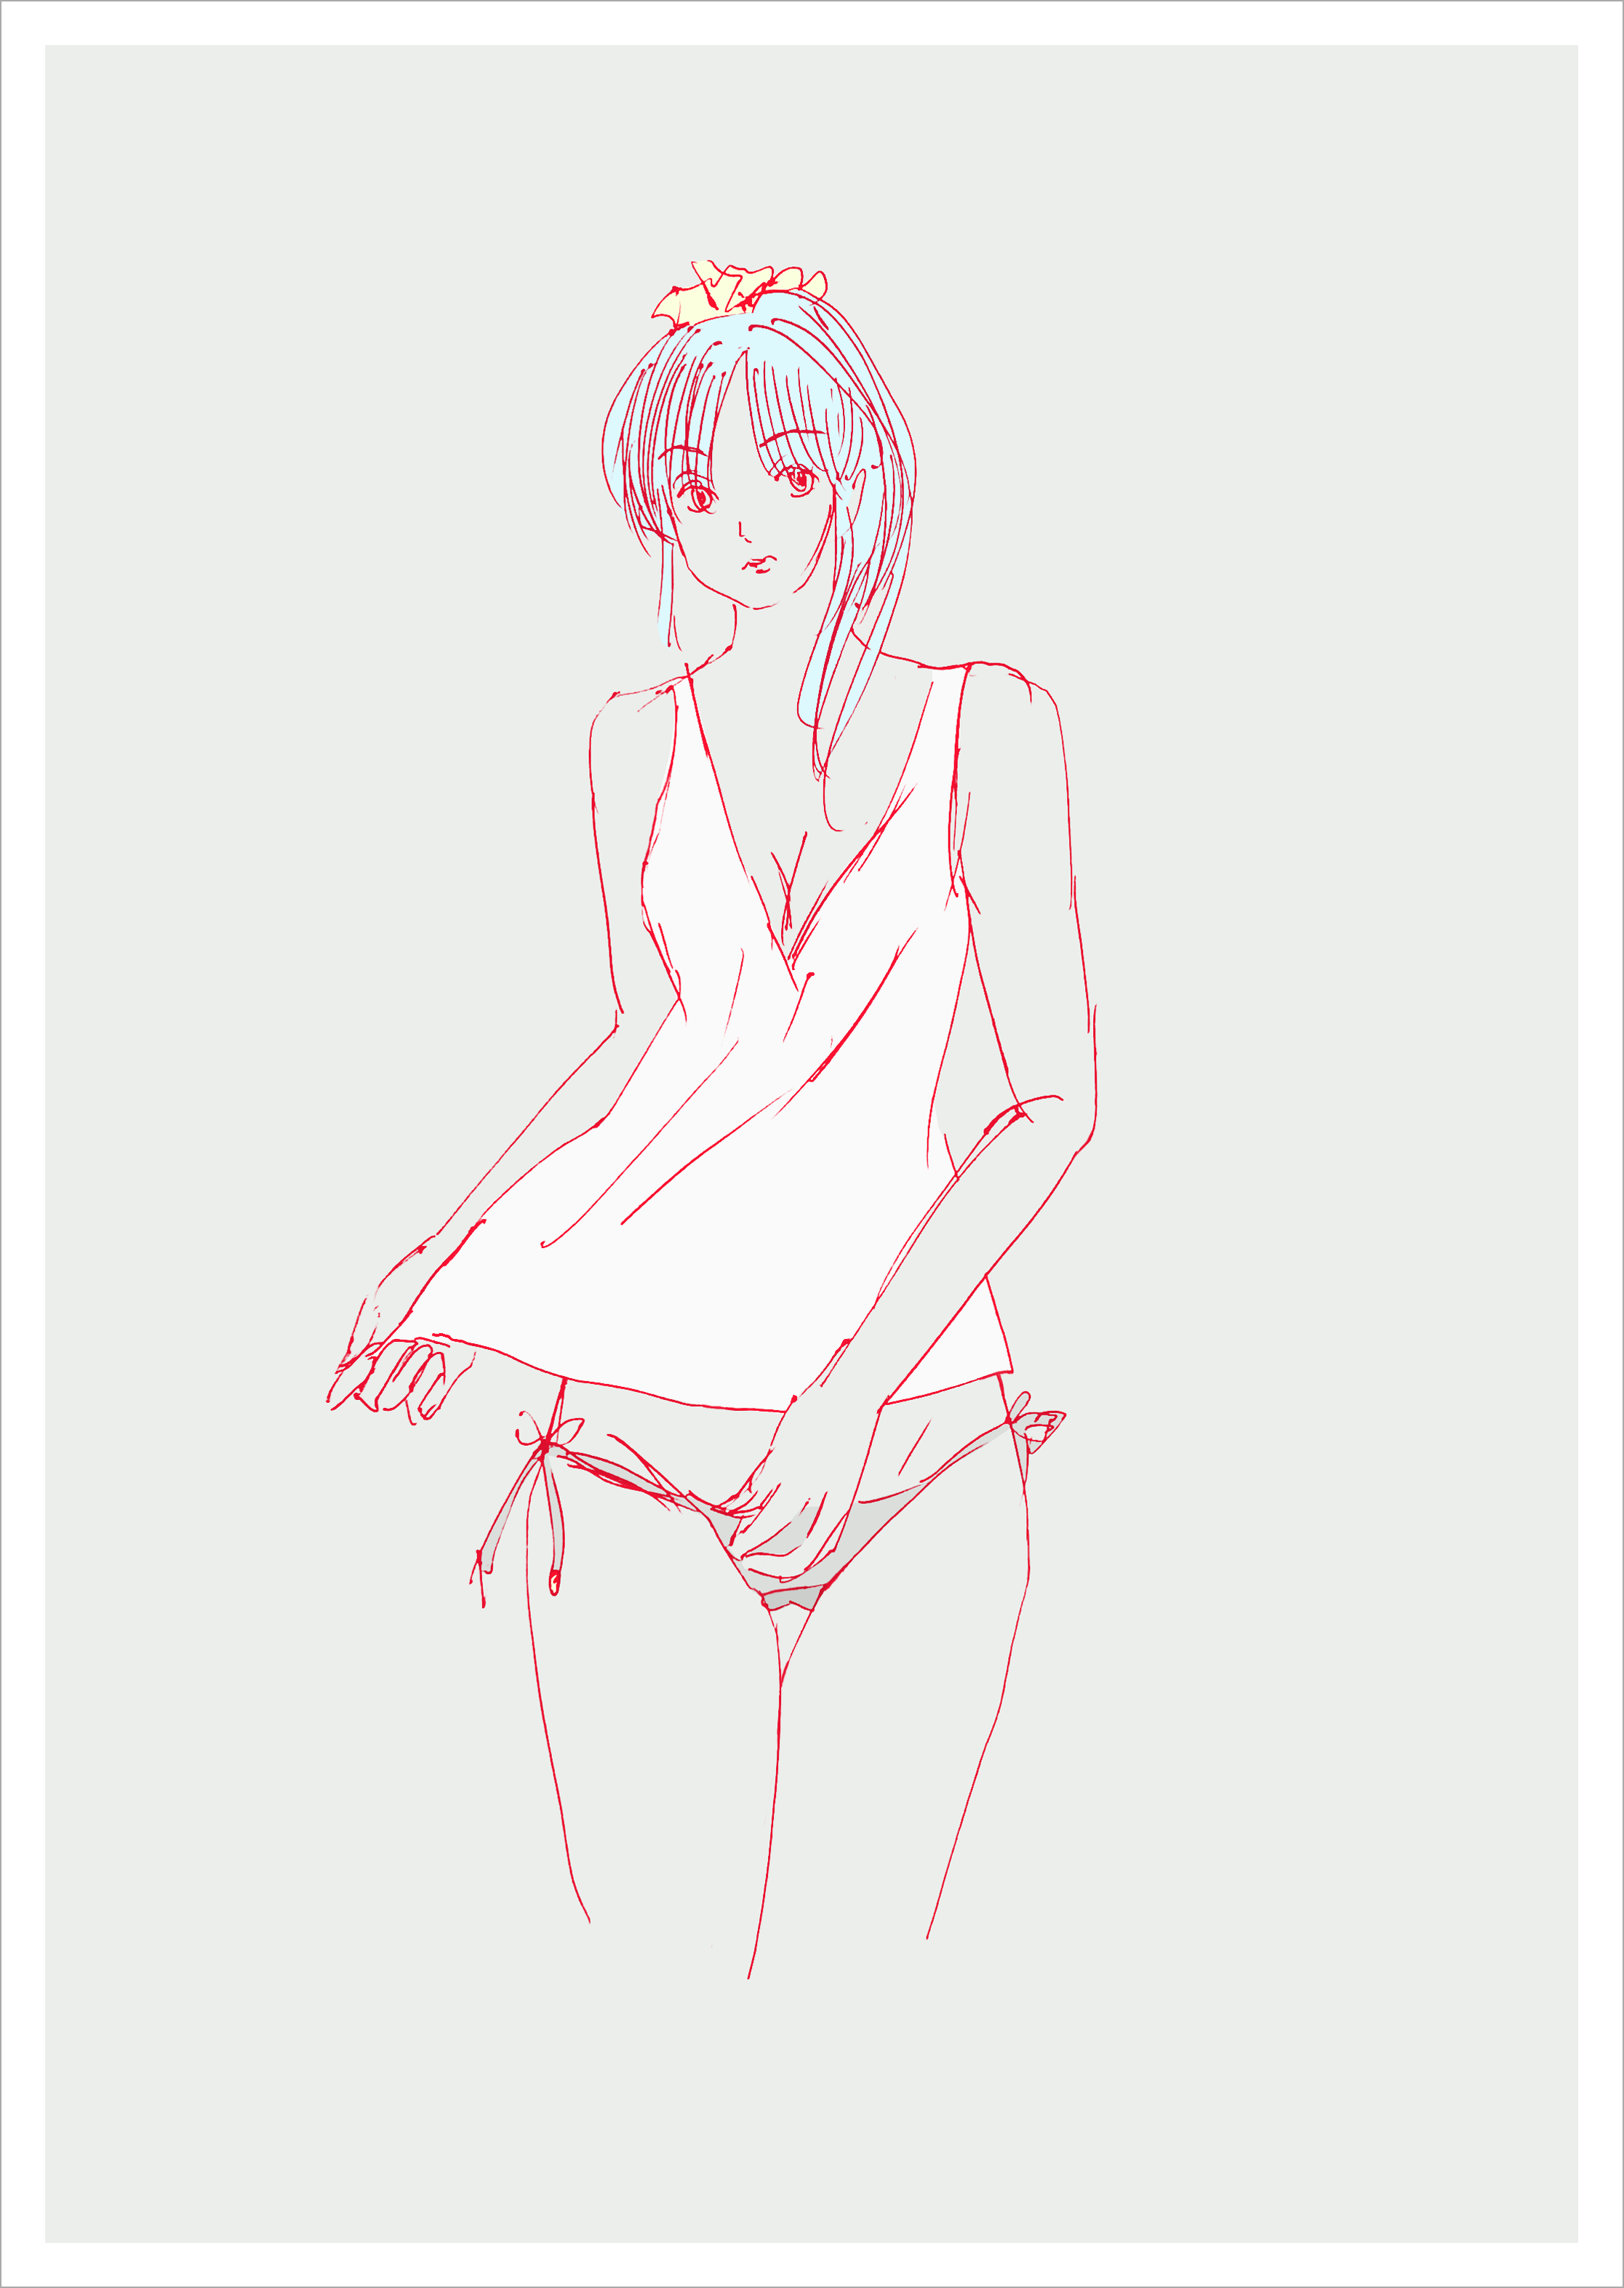 Camisole-May-2018.png